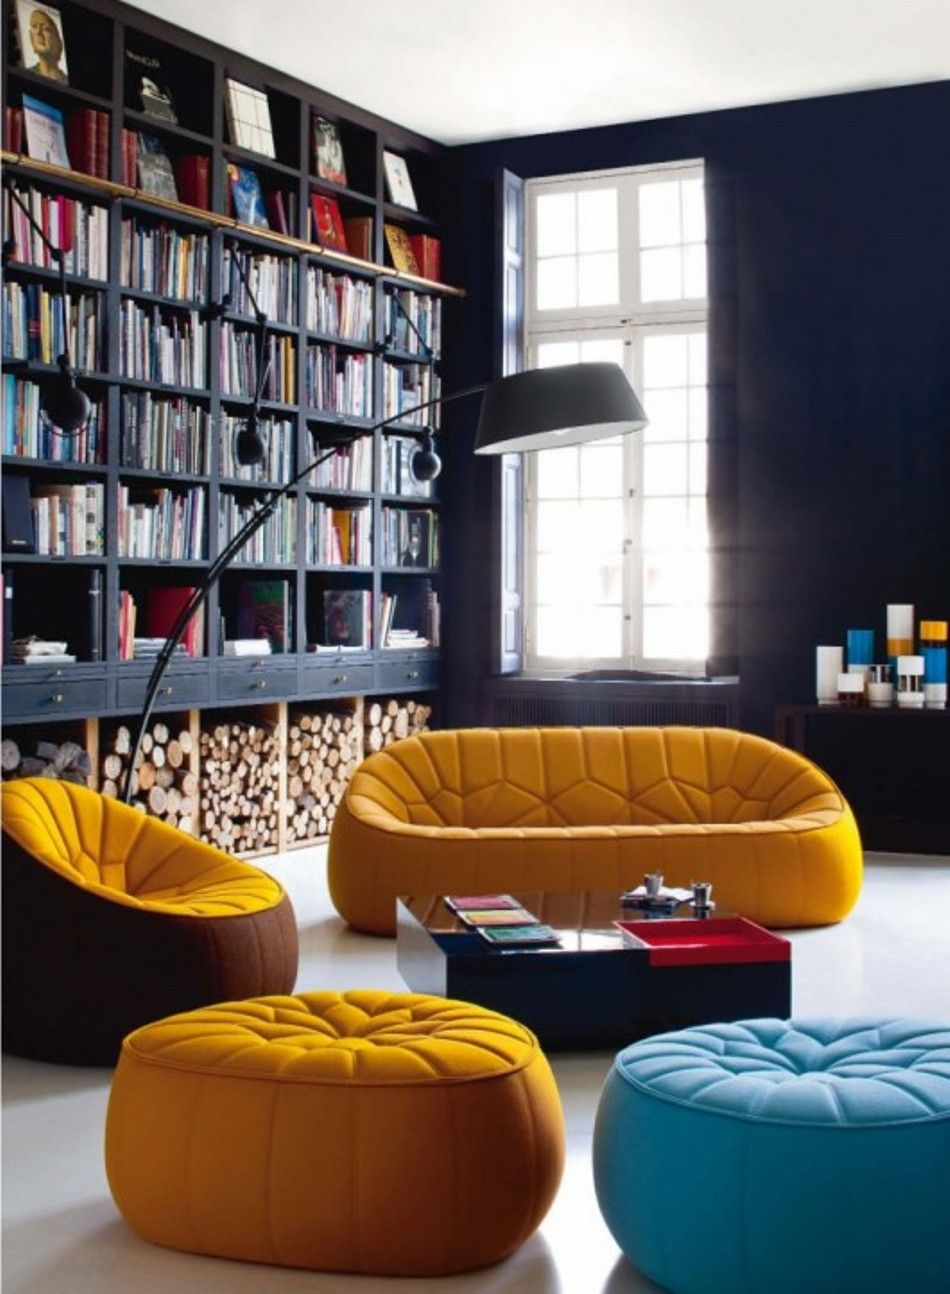 Captivating Dark Library, Bright Sofas Pictures Gallery